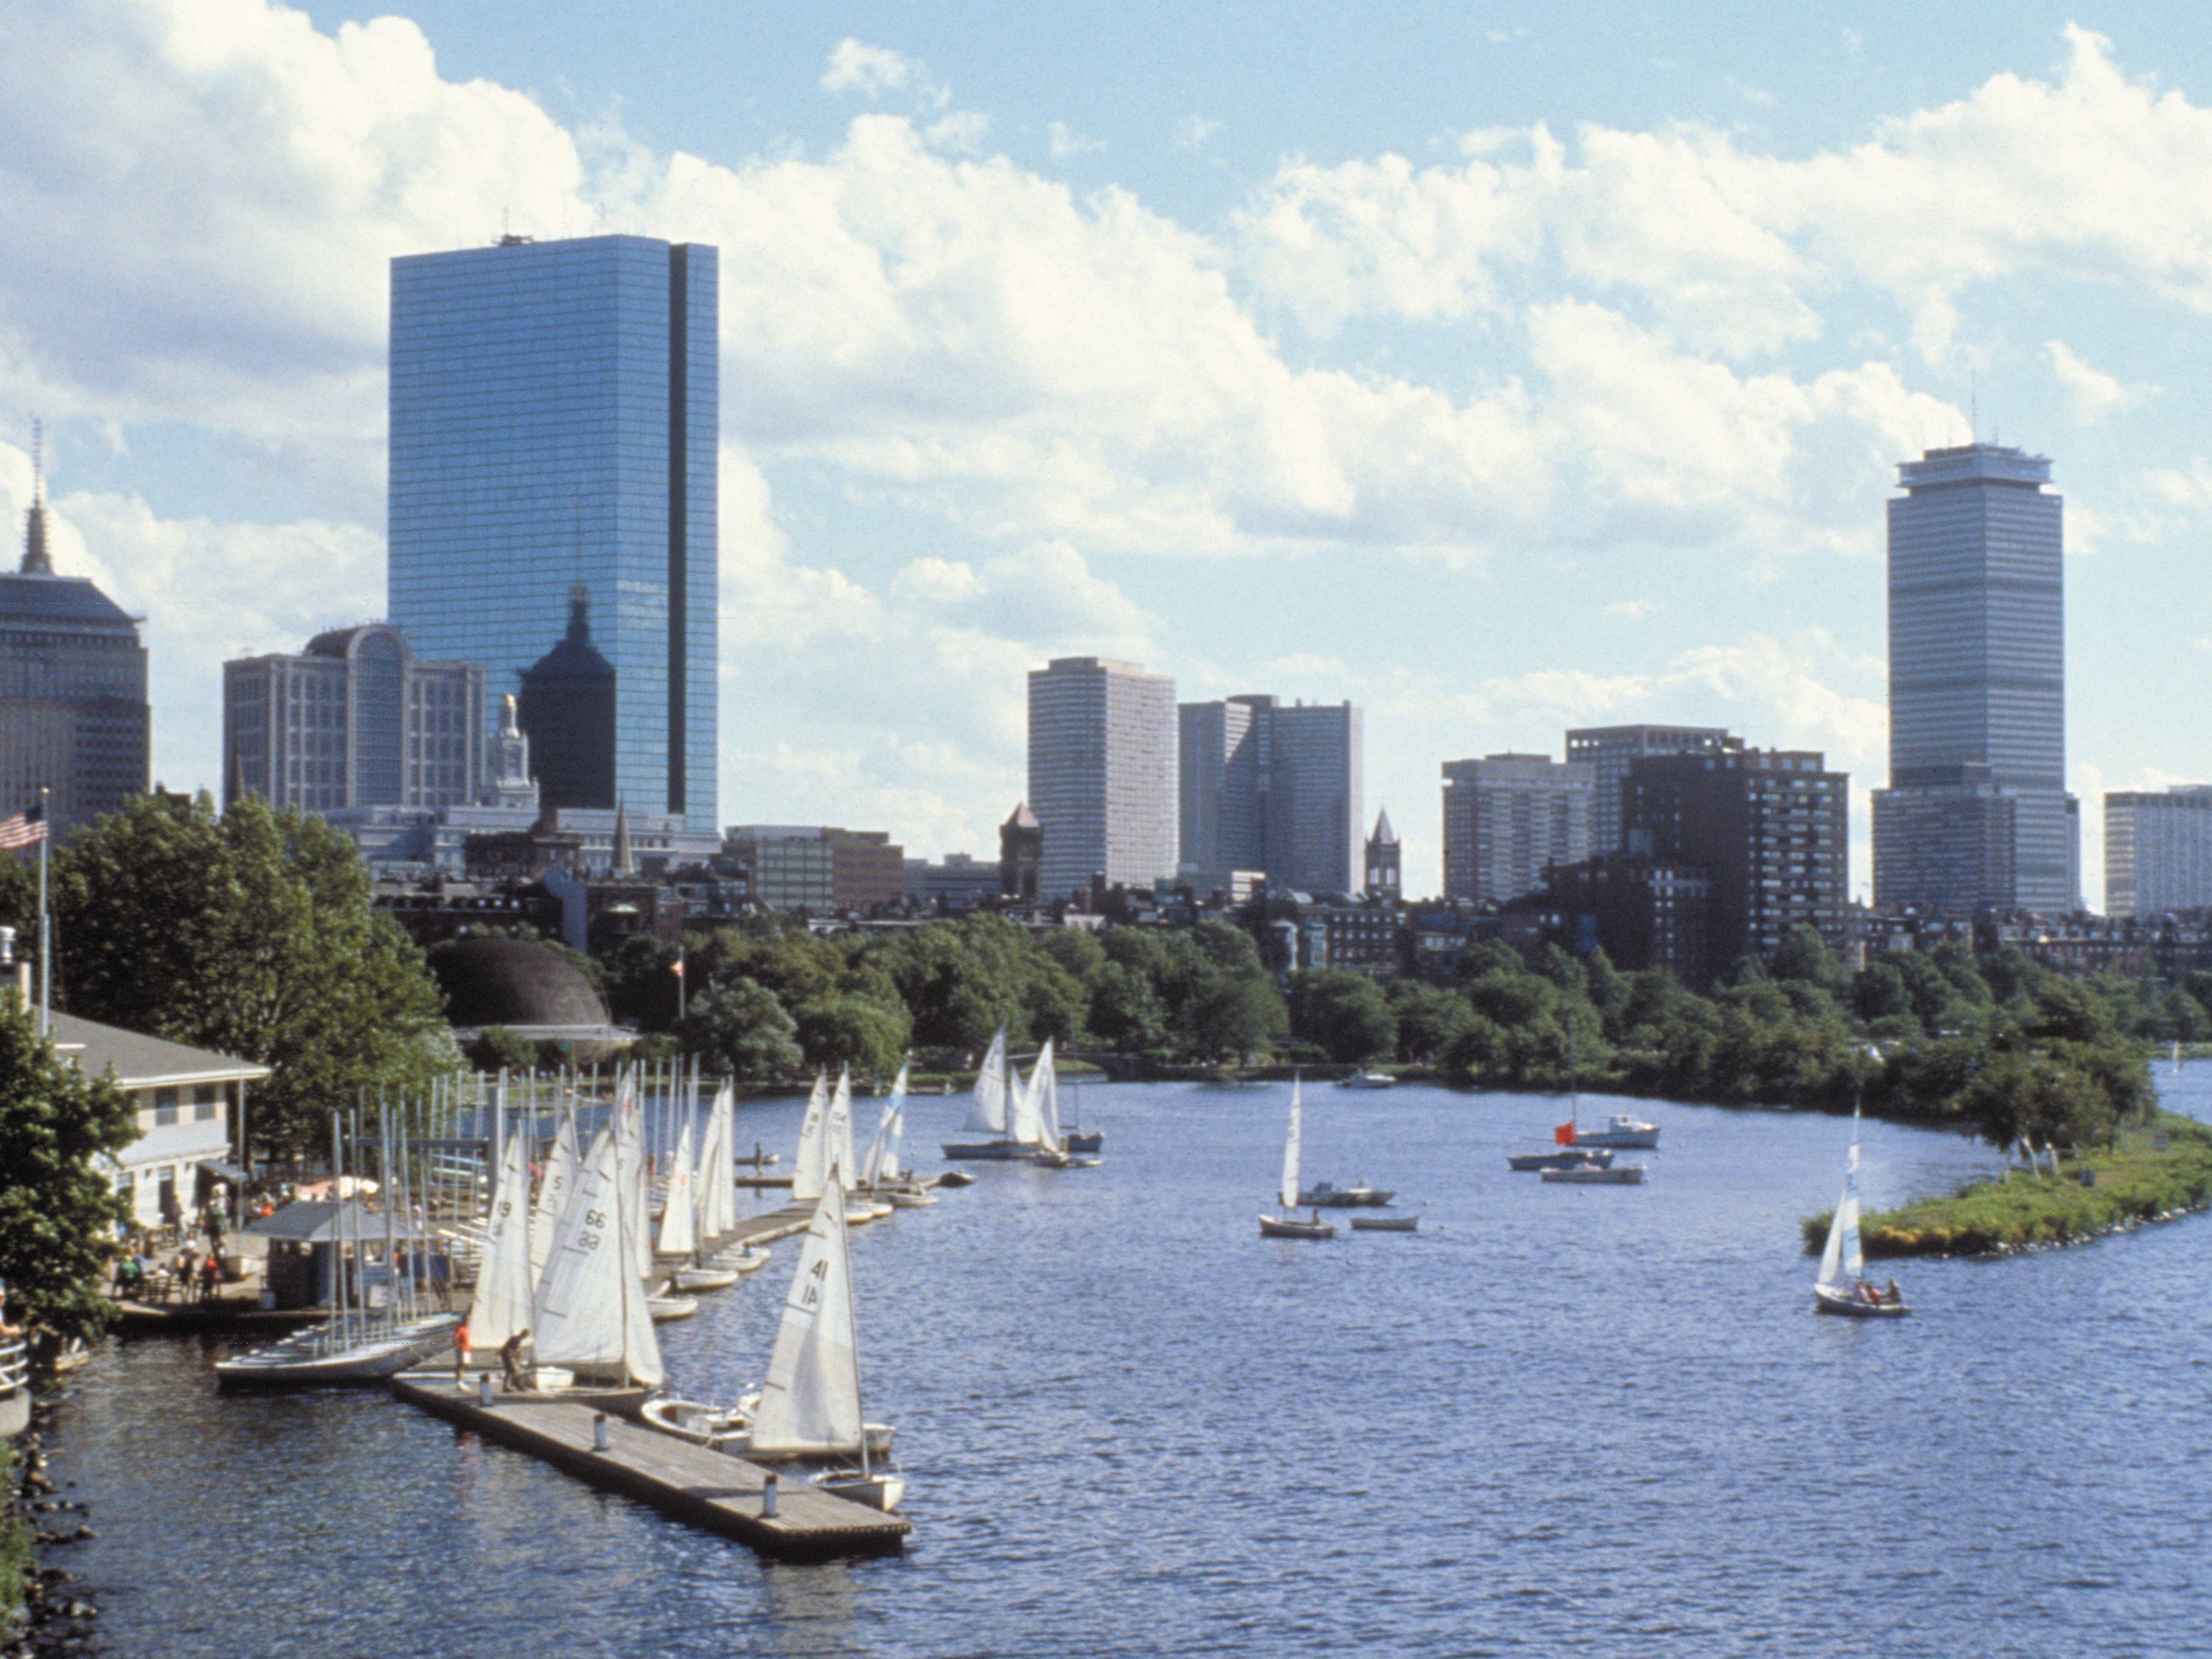 What's it like living in Boston? Tell us here!